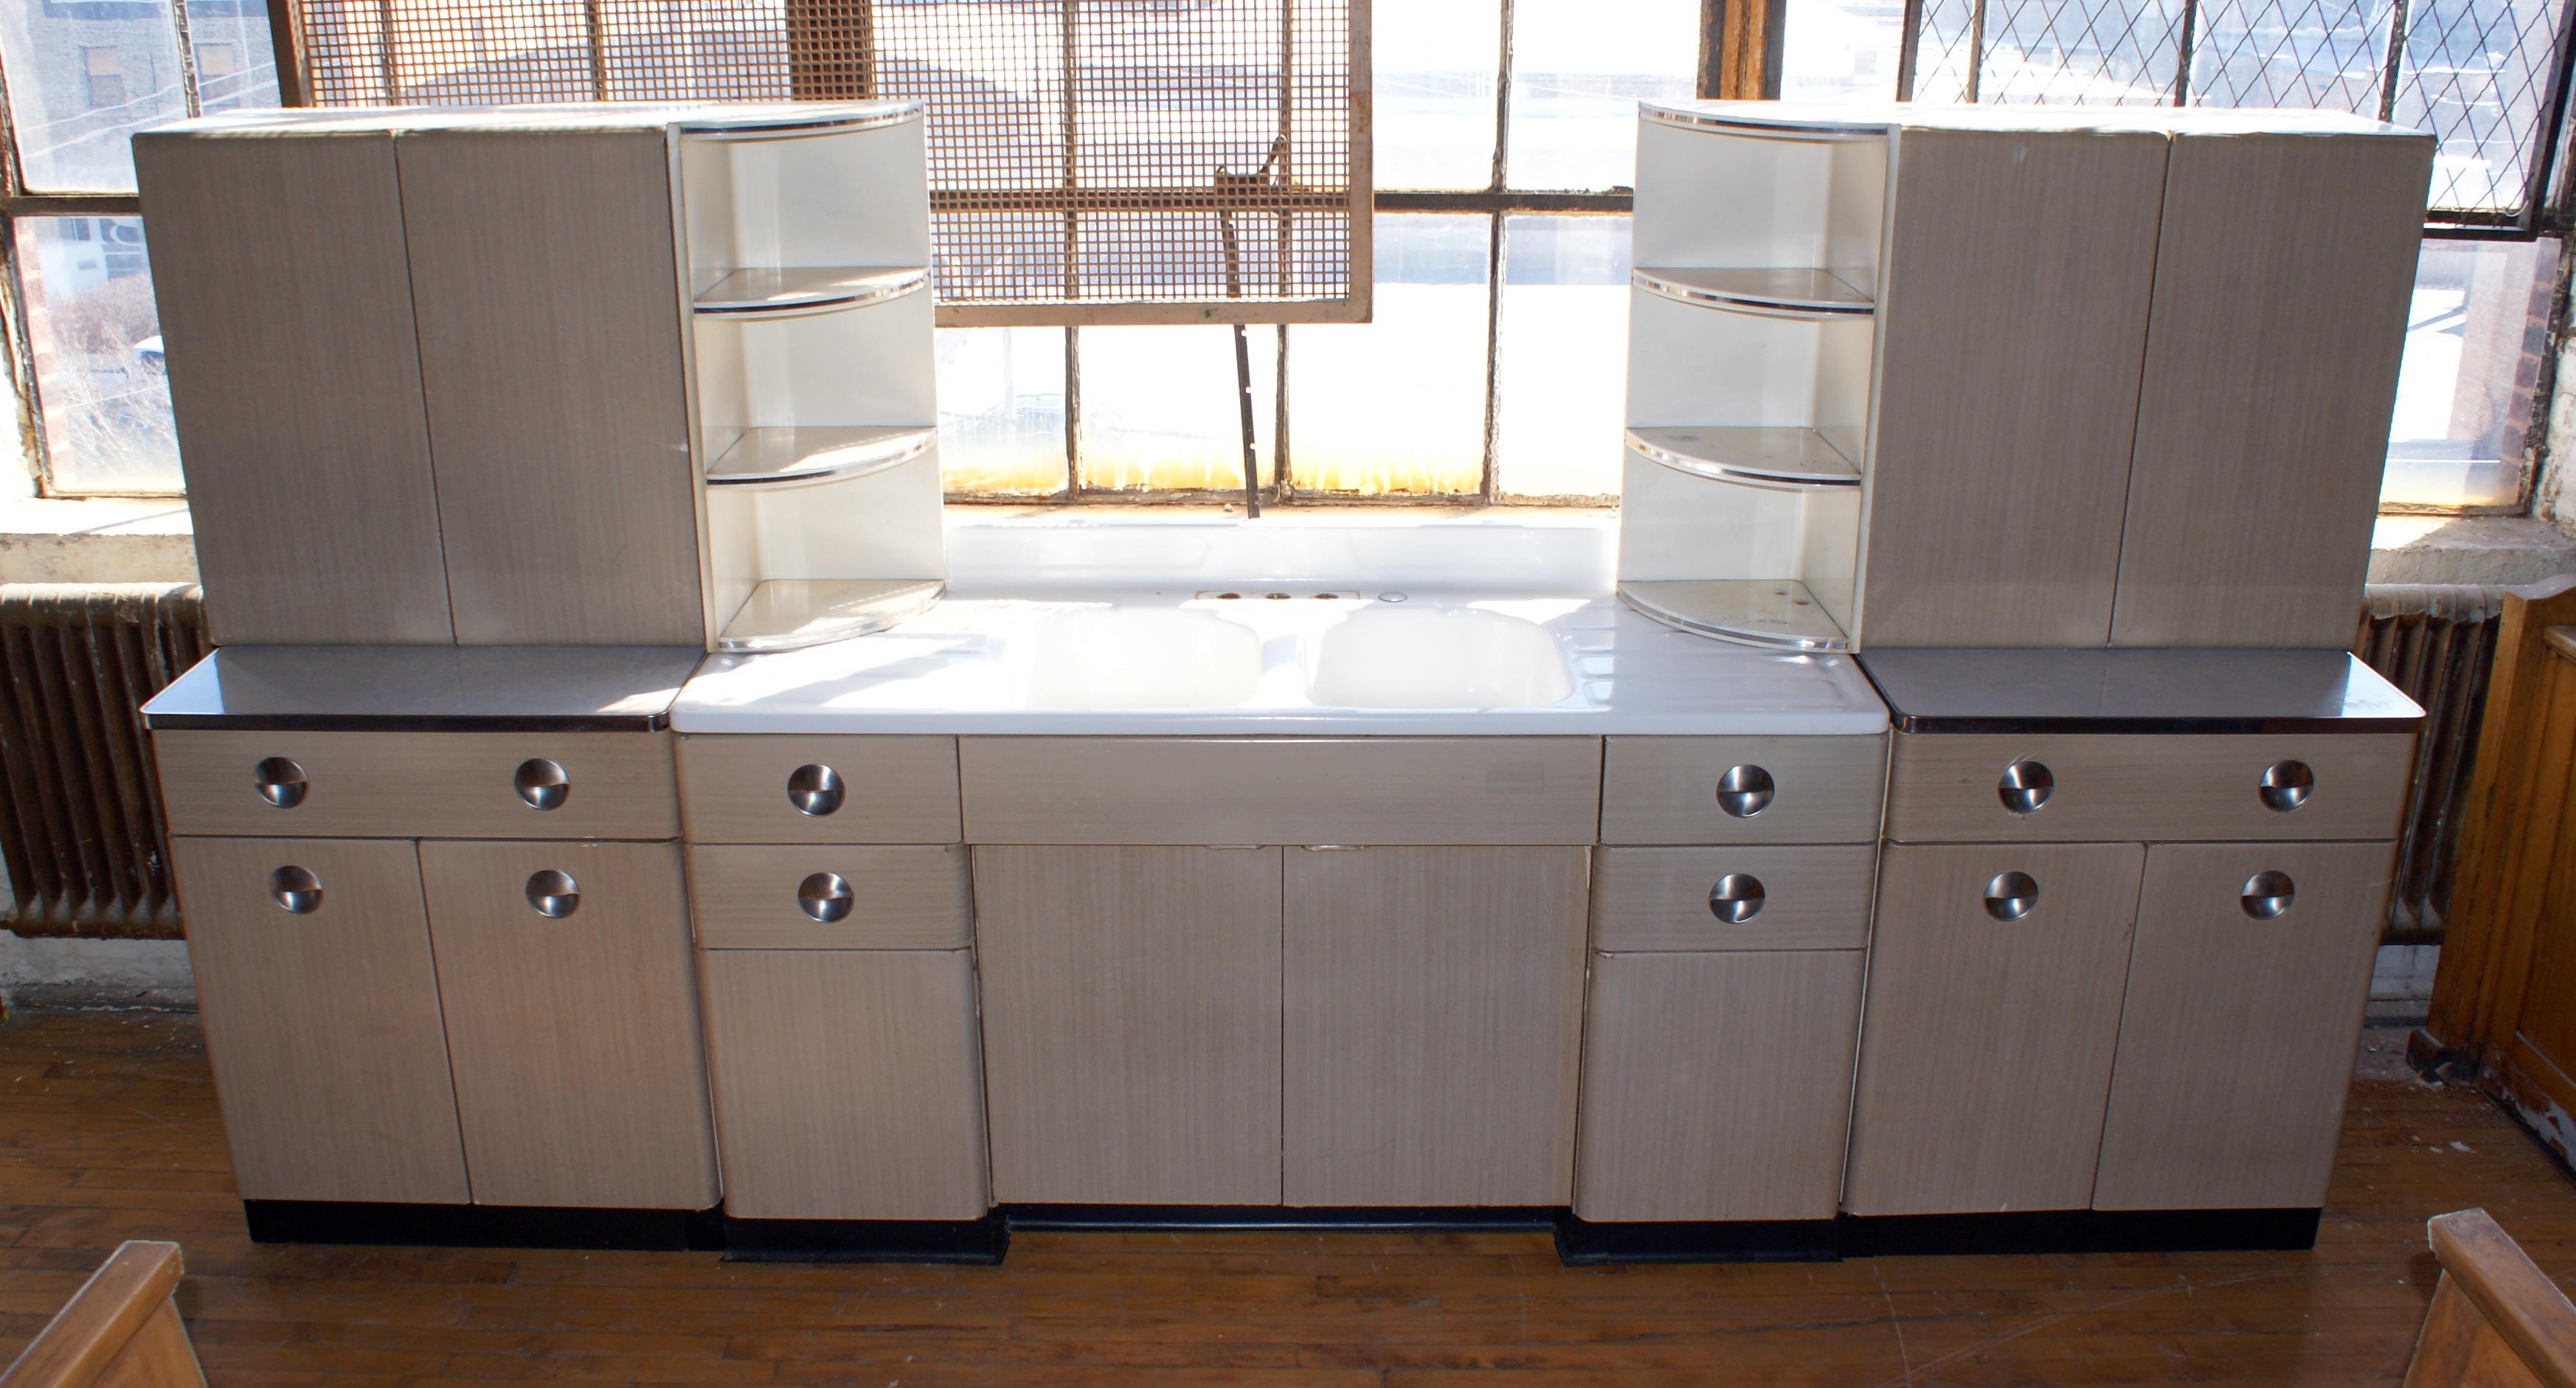 Complete Sears Roebuck 1950s Kitchen Setup – Salvage One